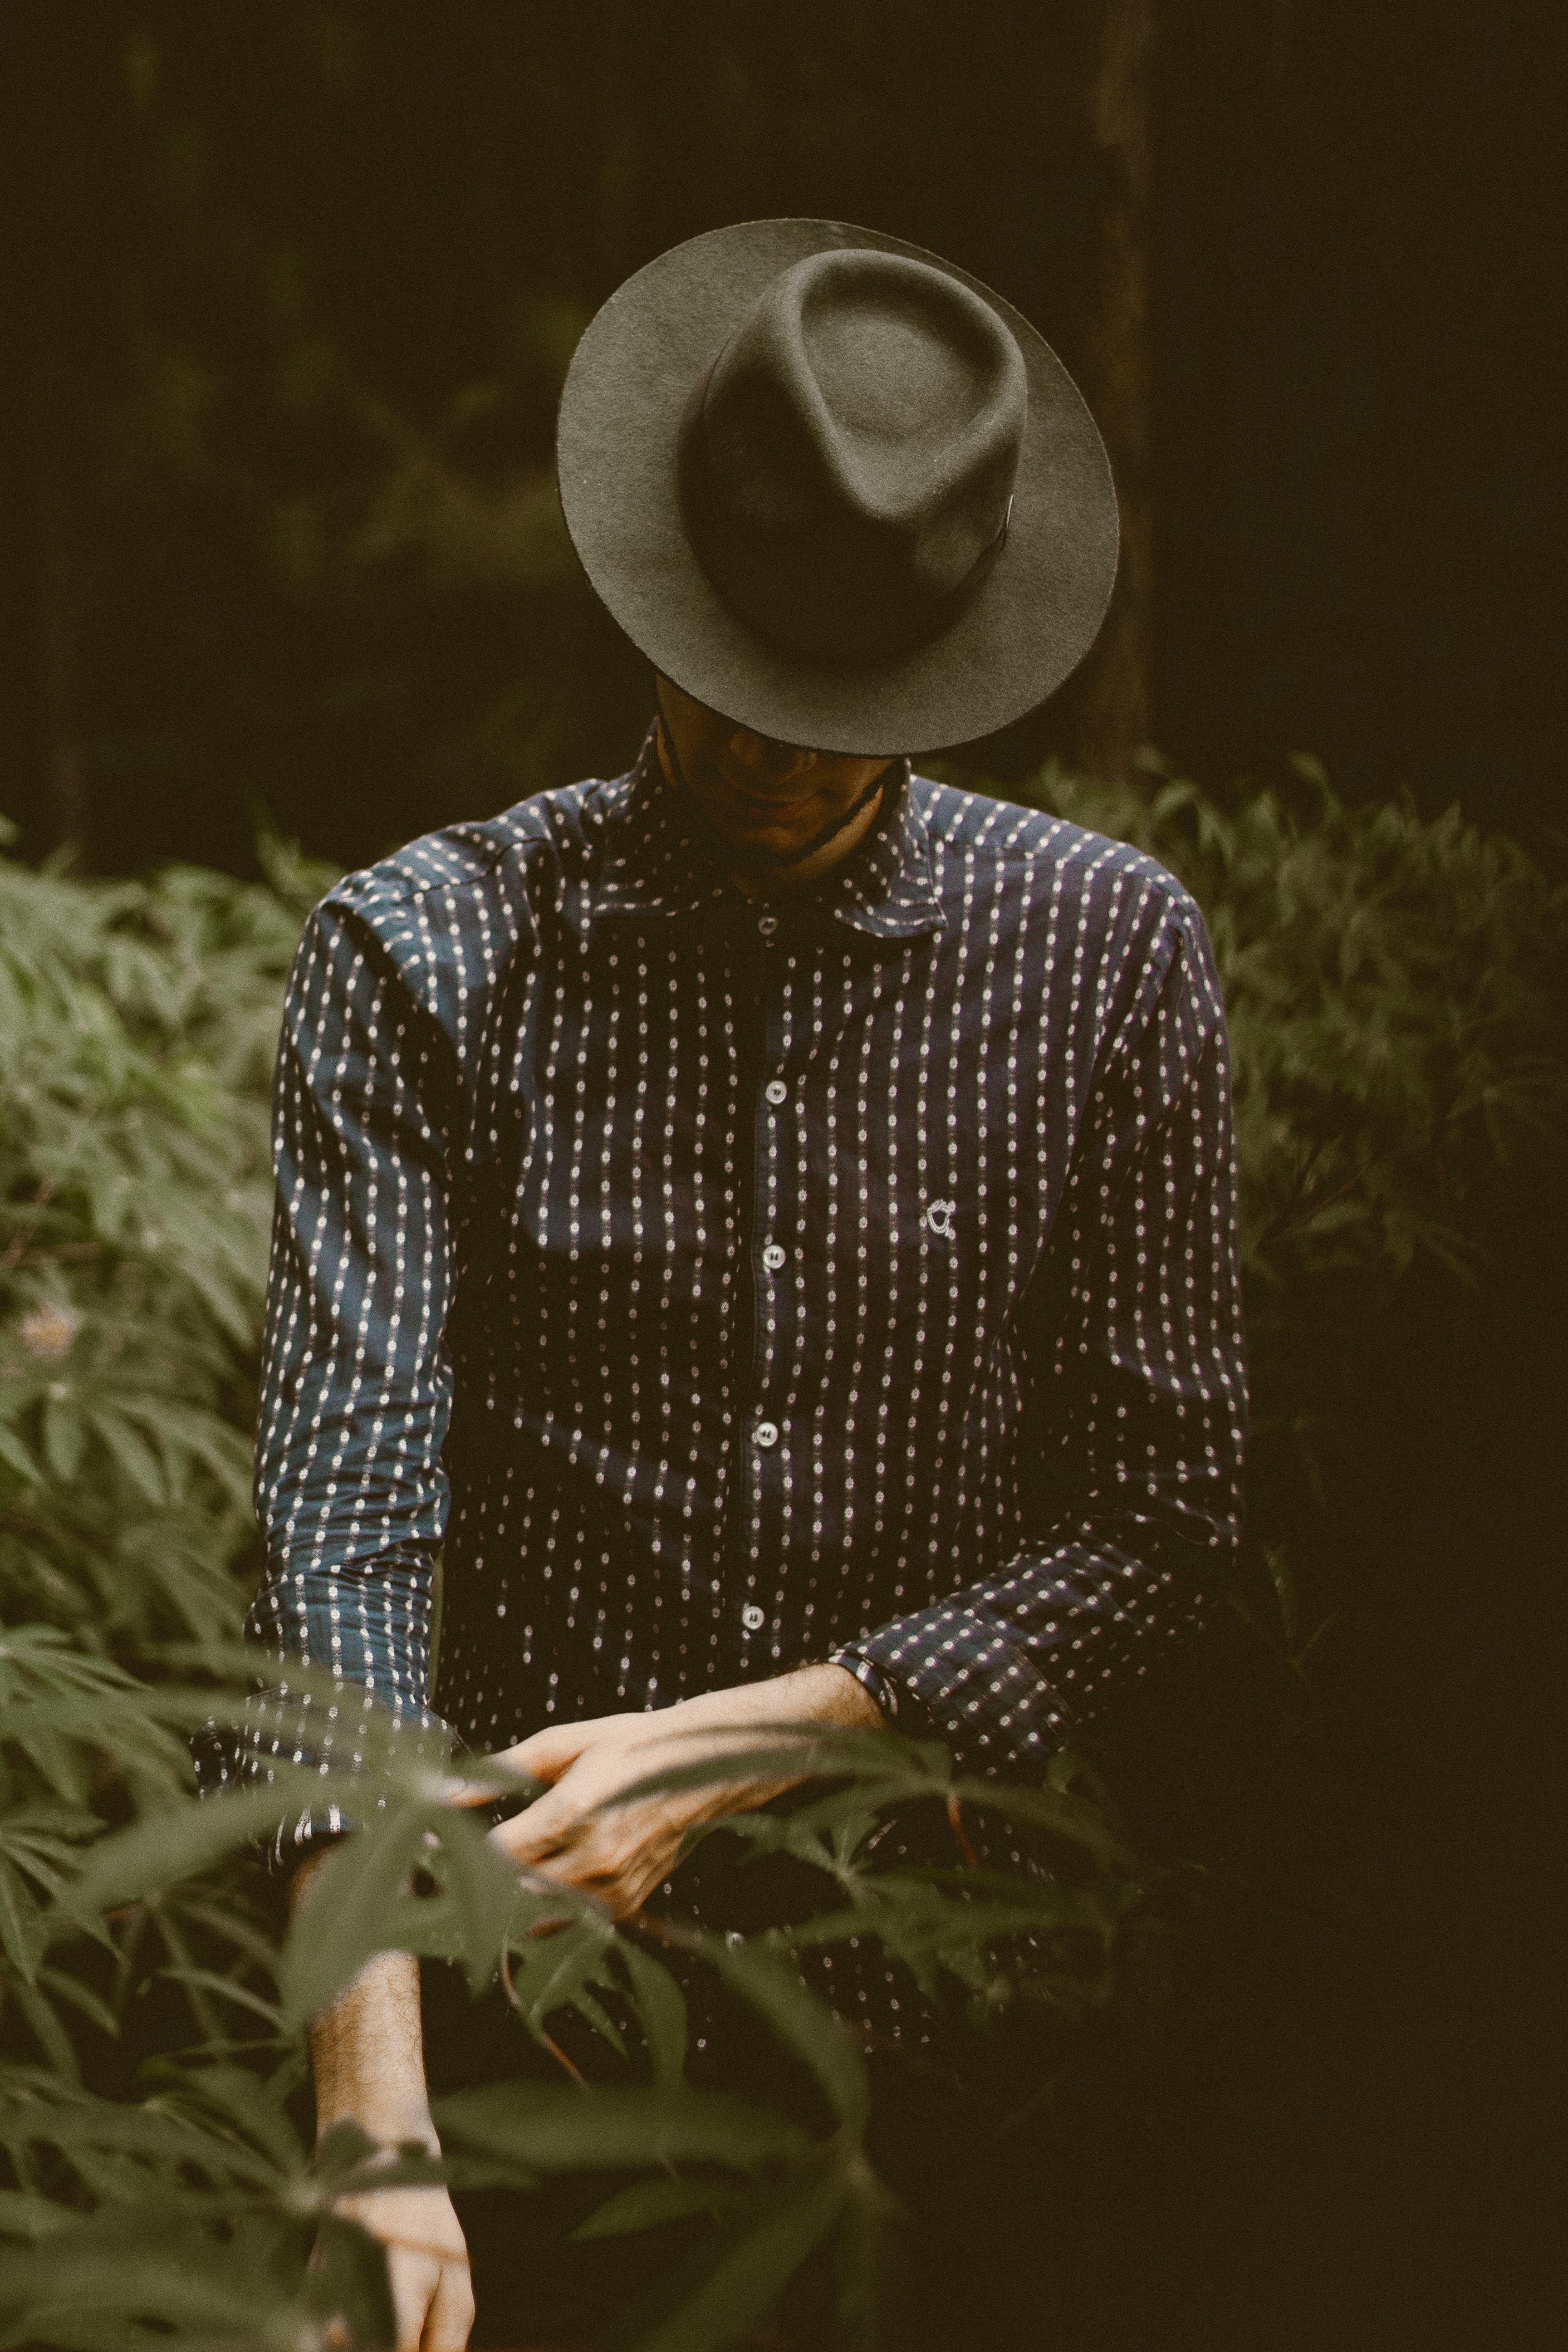 A man standing in the bushes wearing a hat and polka dotted shirt